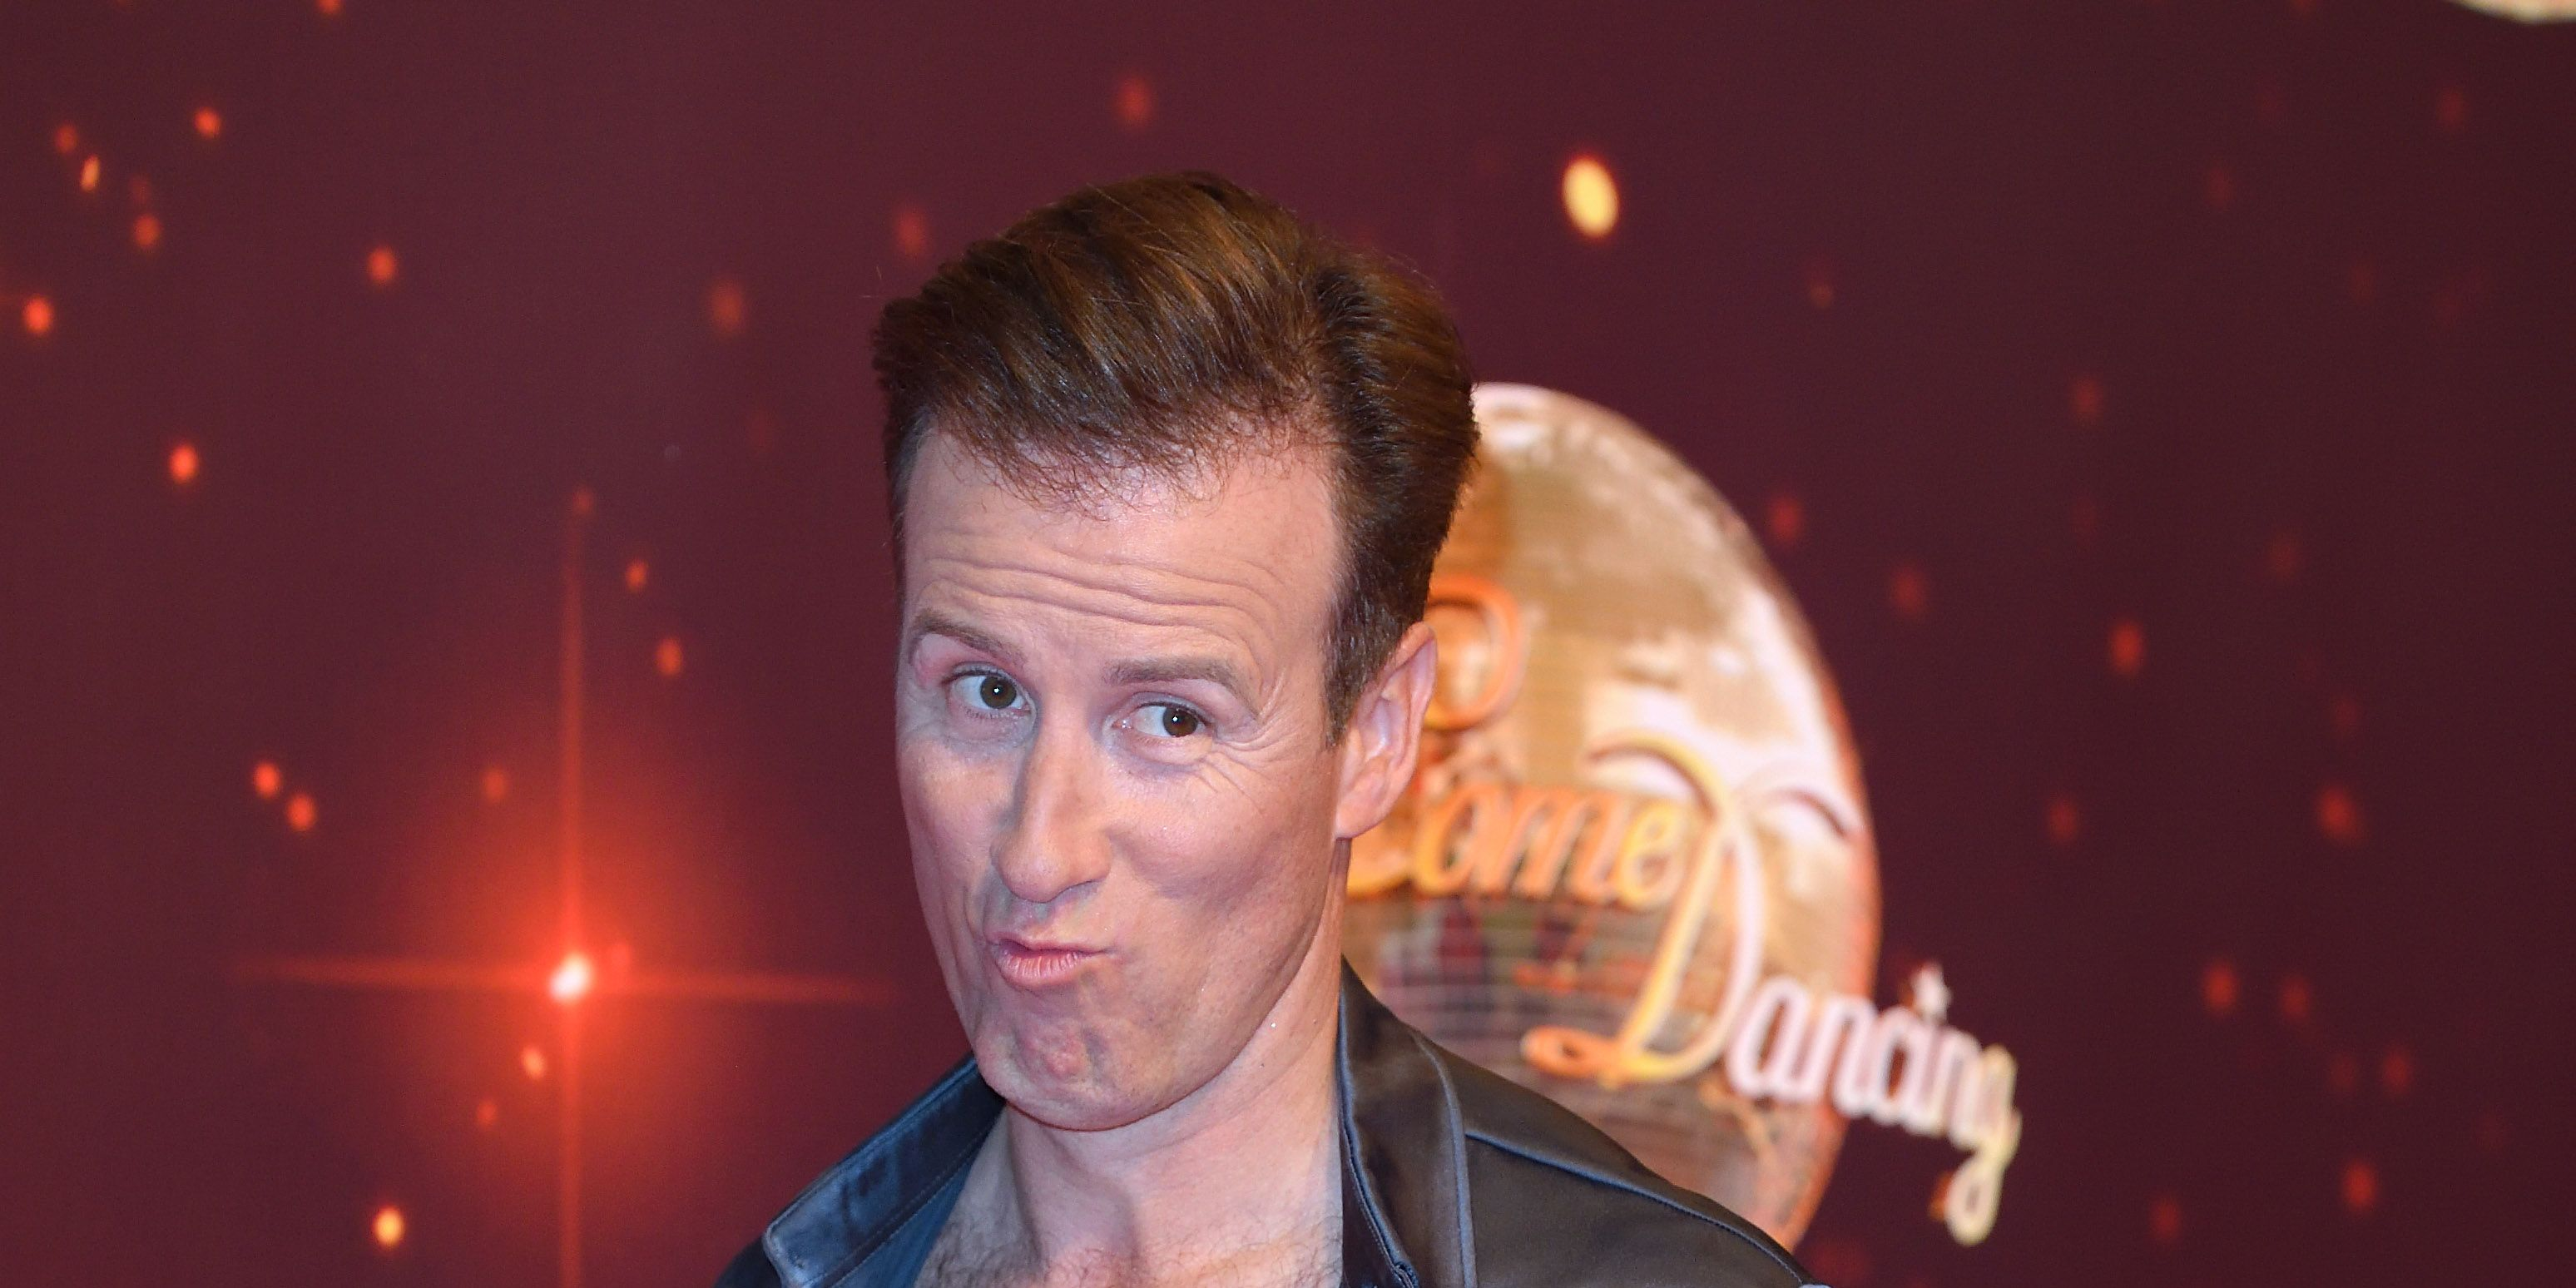 Anton Du Beke on the Strictly Come Dancing red carpet